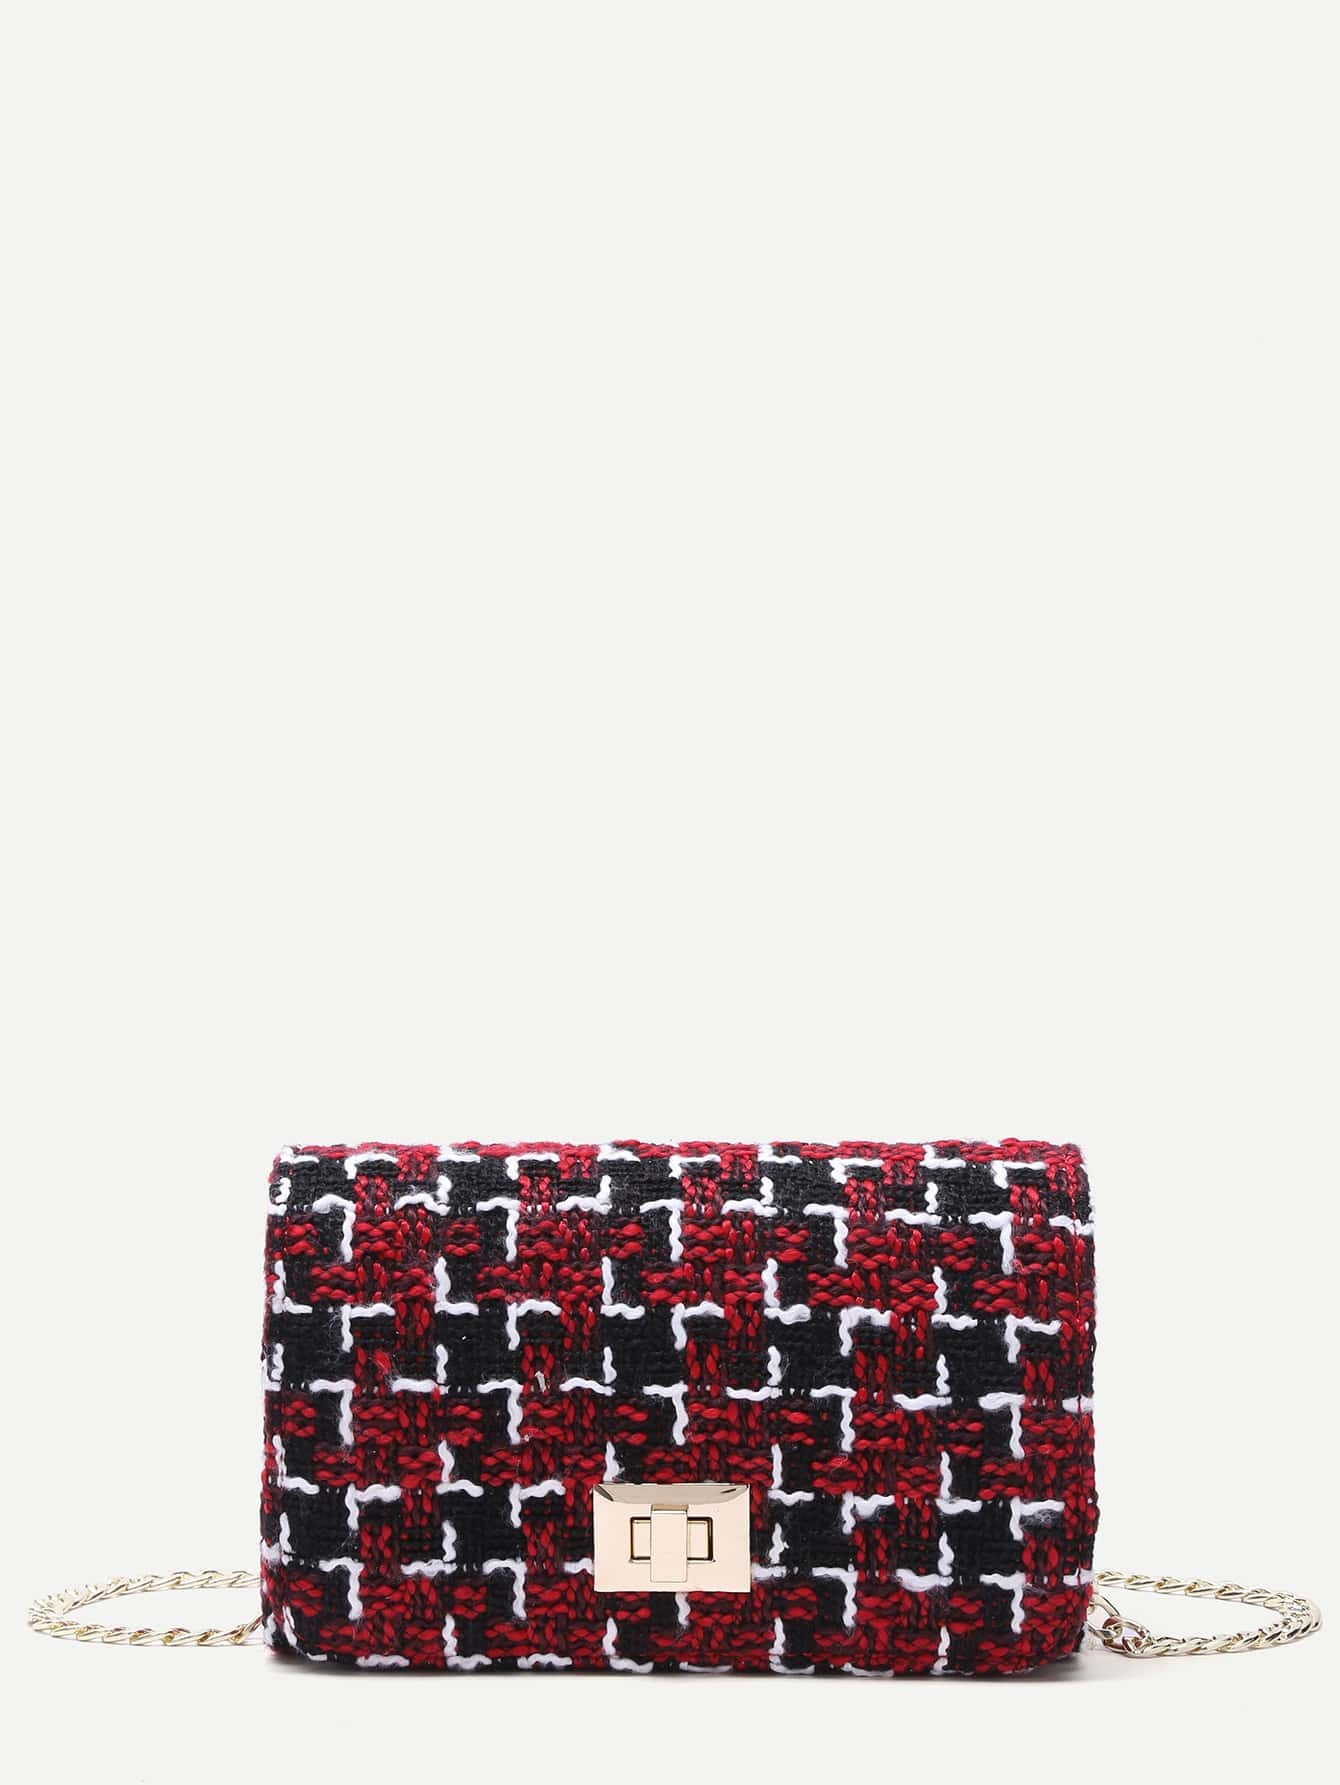 Red Plaid Twistlock Closure Boxy Chain Bag Image